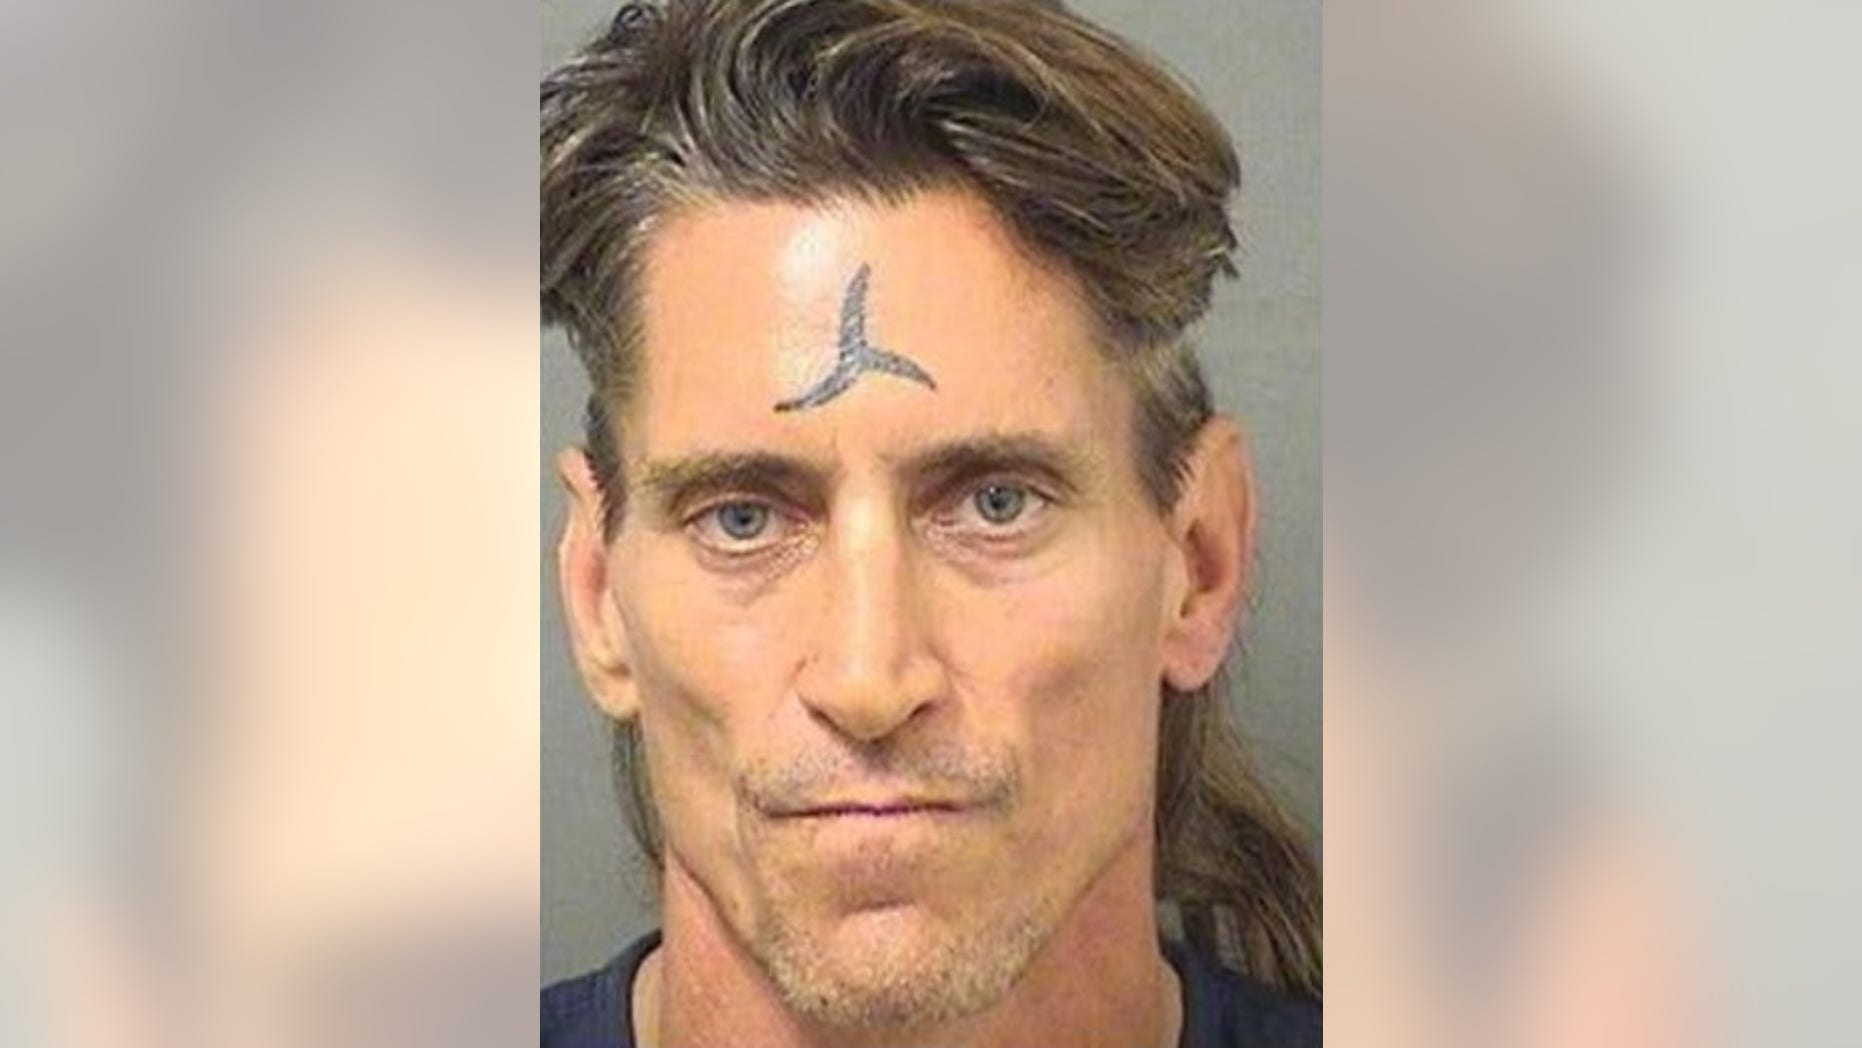 George C. Livingston, 51, was charged with second-degree murder after a man he knew was found dead next to a three-foot sword in Florida.